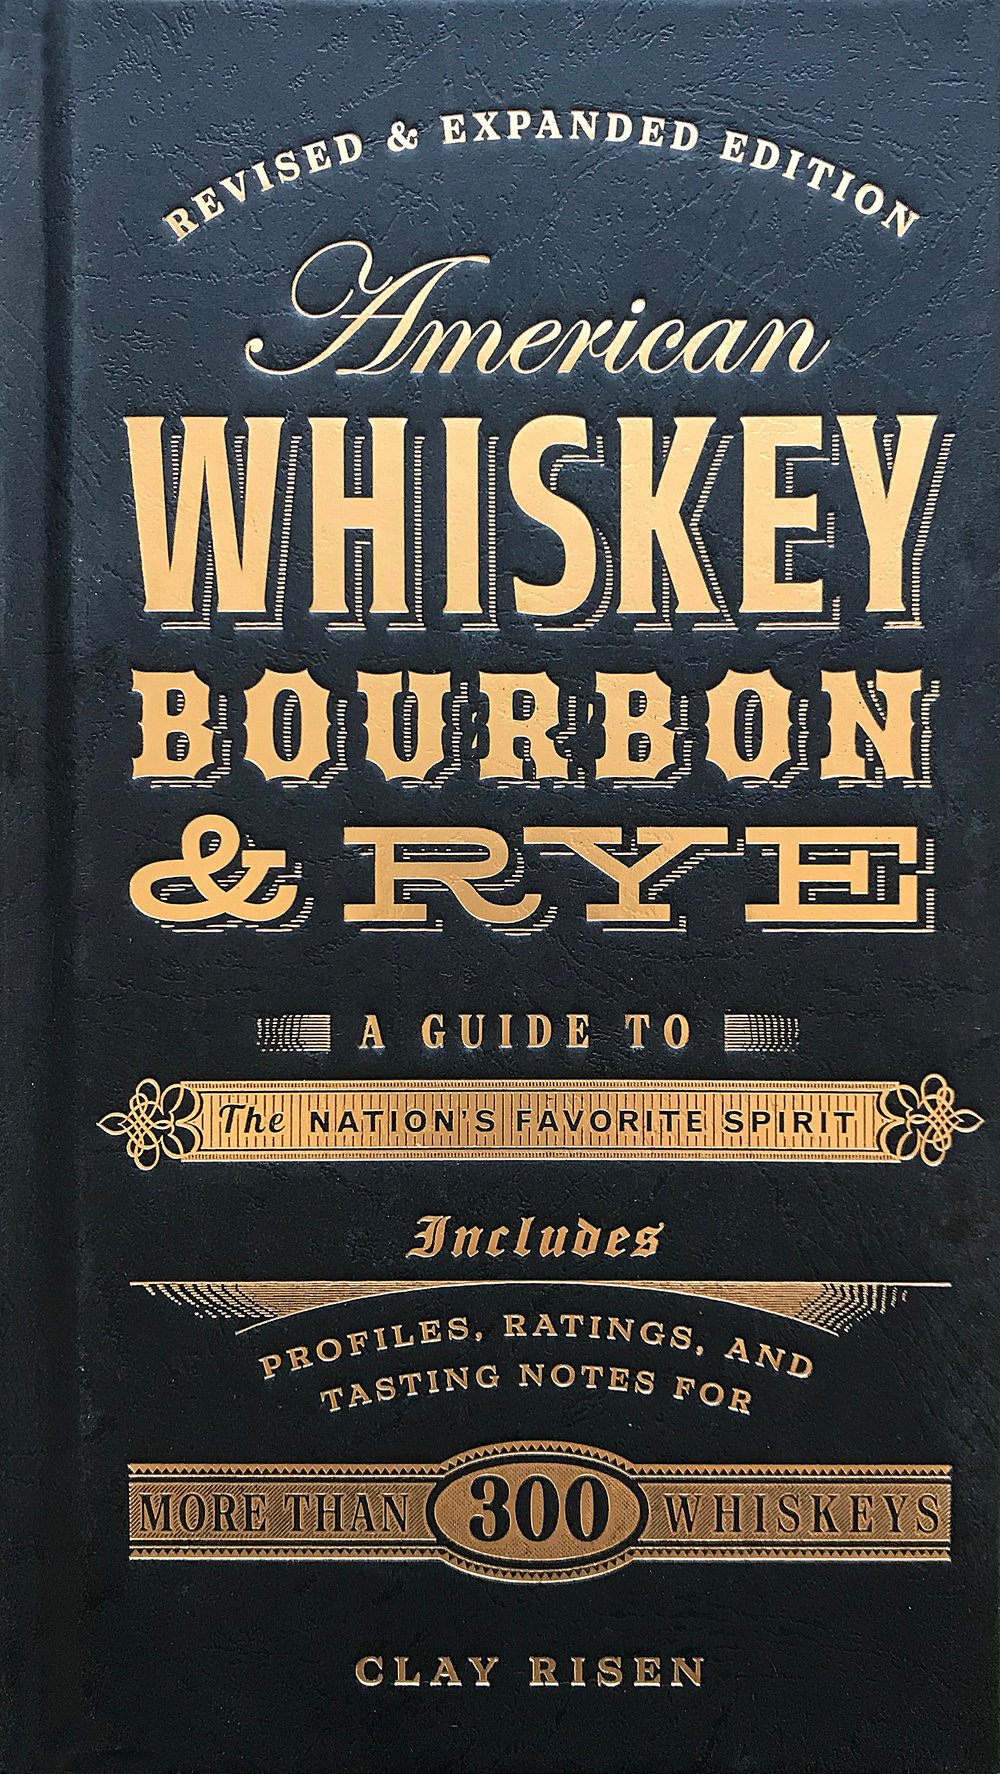 Over 100,000 copies sold! - Title: American Whisky, Bourbon & Rye: A Guide to the Nation's Favorite SpiritPublisher: A Scott & Nix Edition/Sterling EpicureSize: 5 x 9